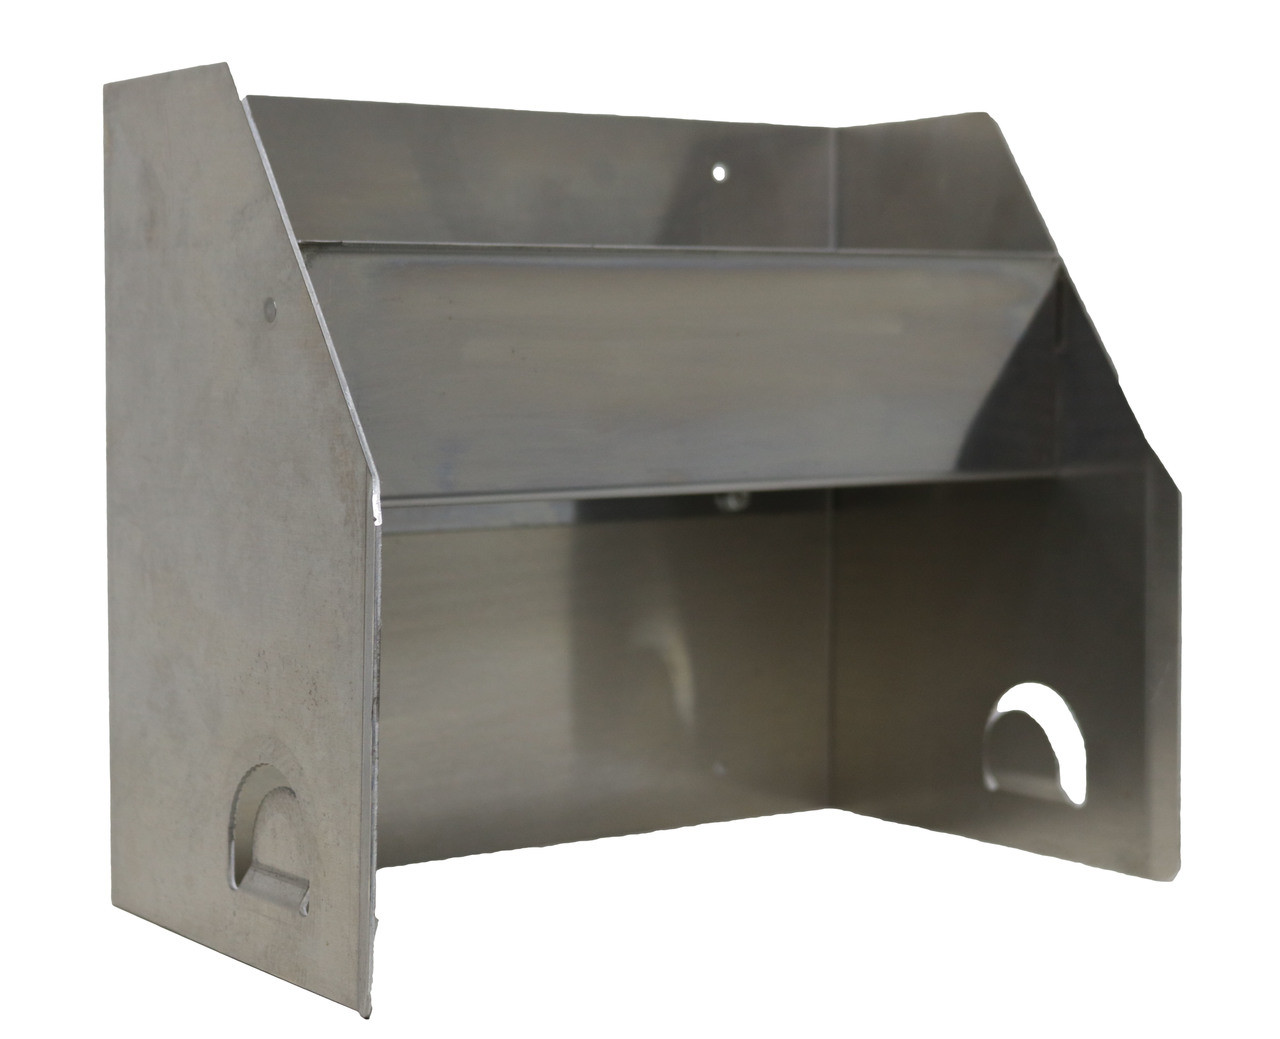 Smooth Aluminum Hand Cleaner Rack with stainless steel tray